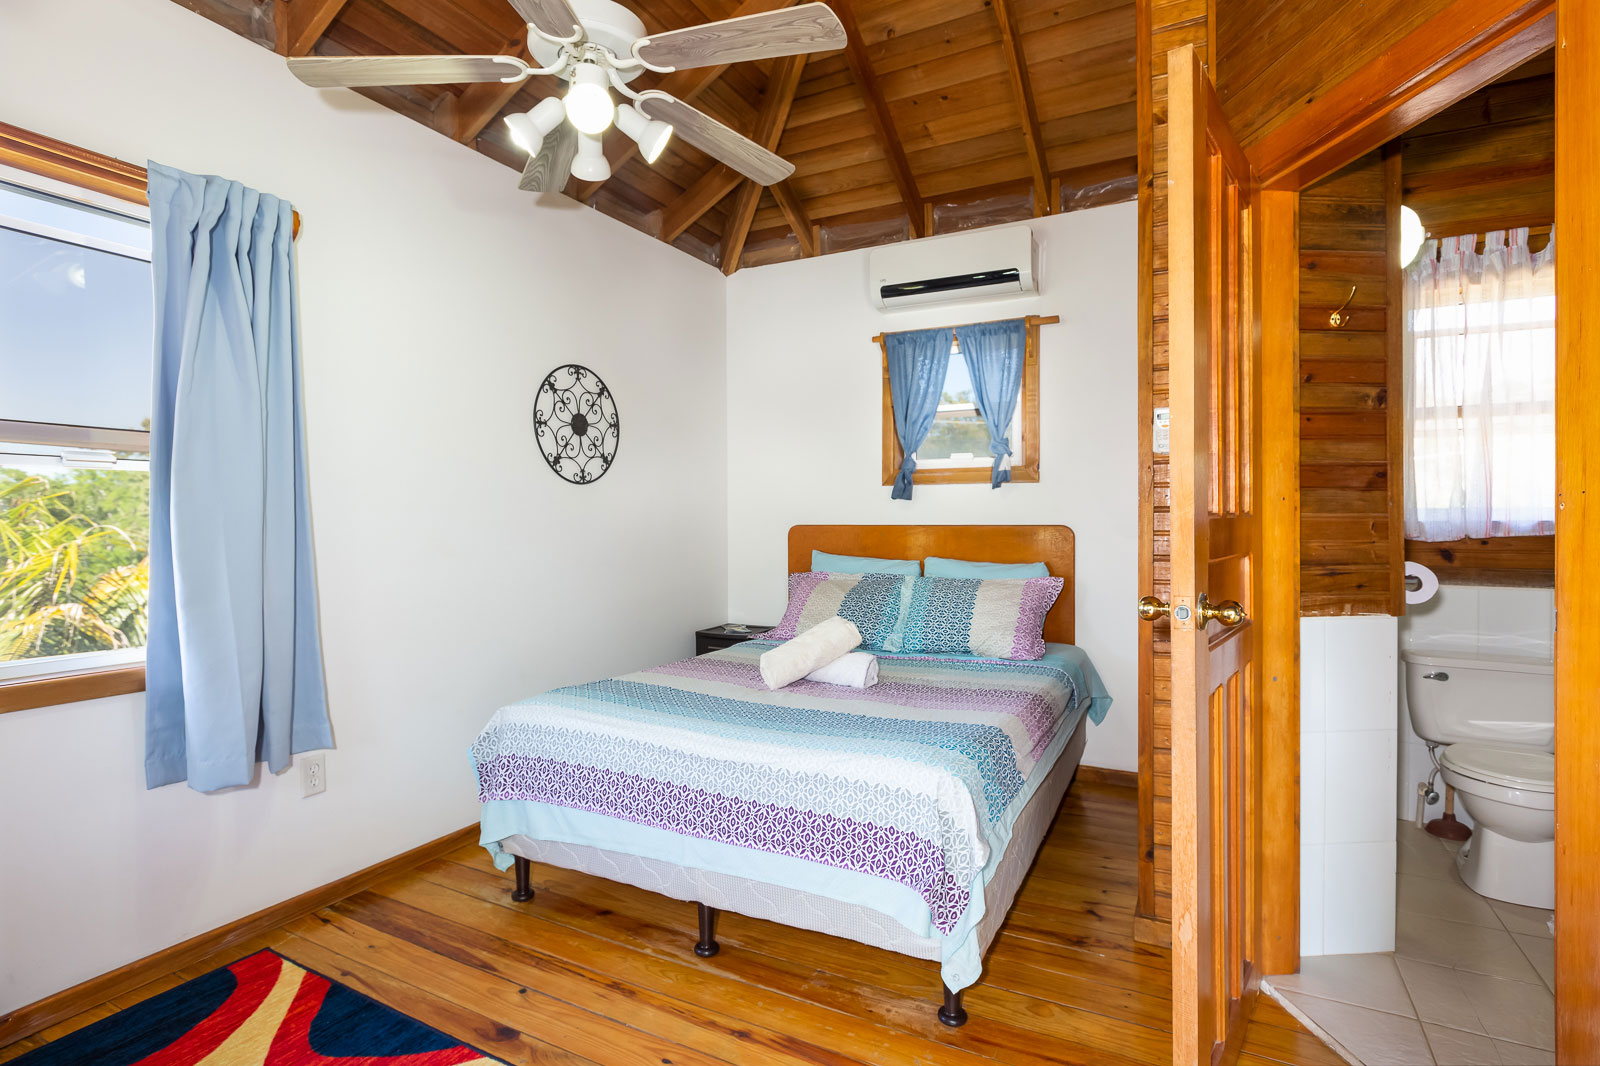 https://secureservercdn.net/166.62.111.174/170.2f8.myftpupload.com/wp-content/uploads/2020/02/places-to-stay-in-roatan.jpg?time=1607193264